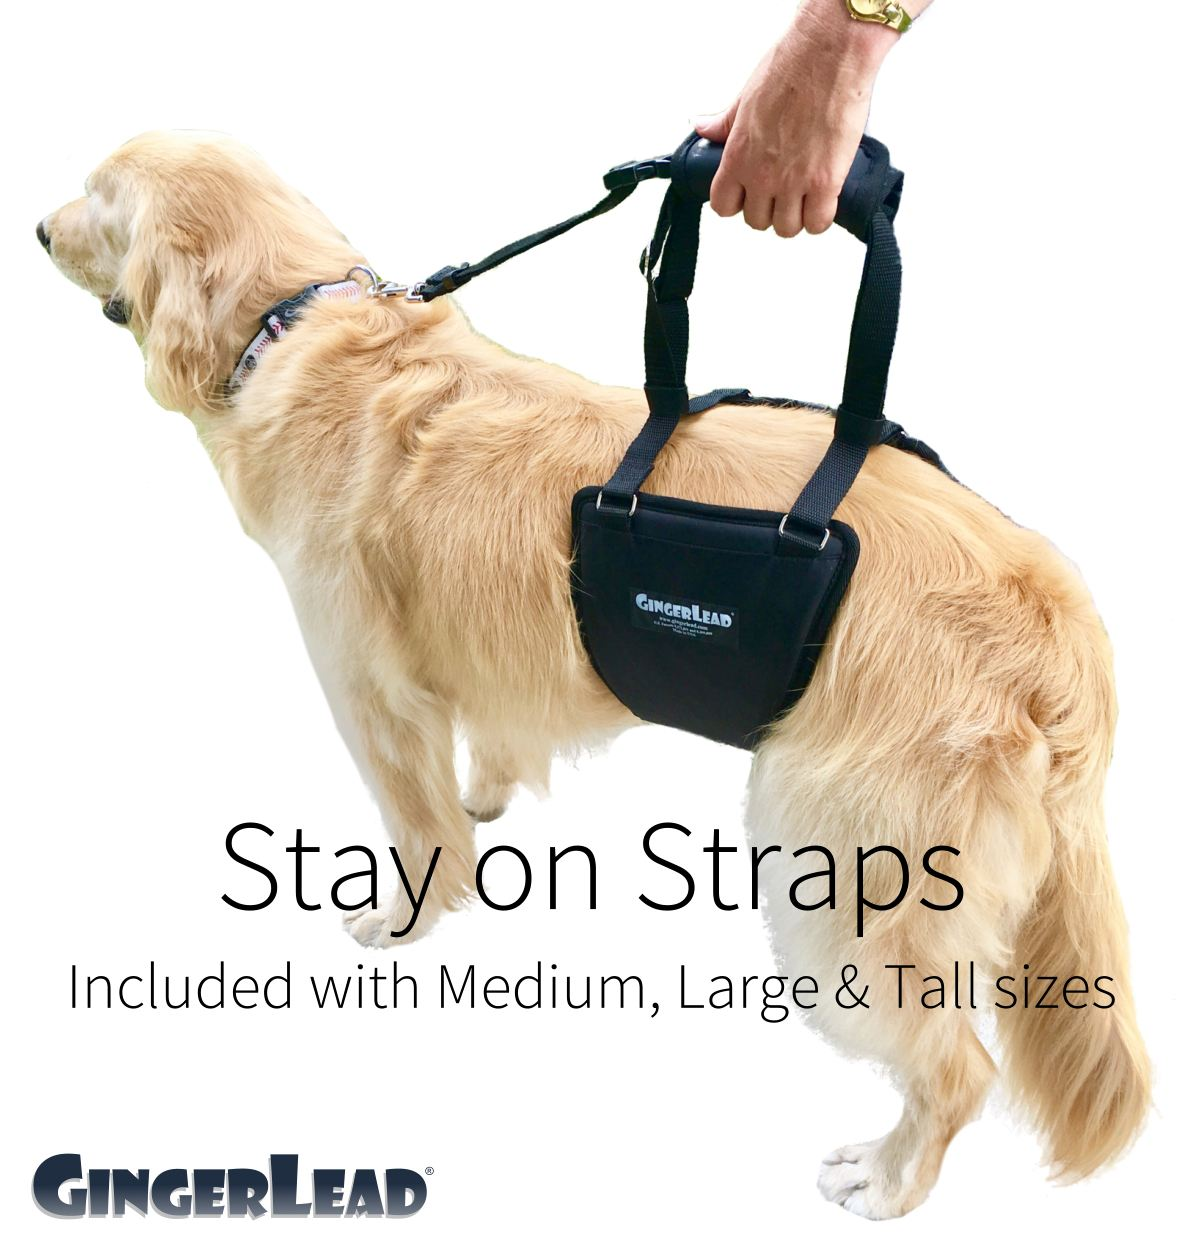 GingerLead with Optional Stay-On Straps for Medium, Large, and Tall Sizes